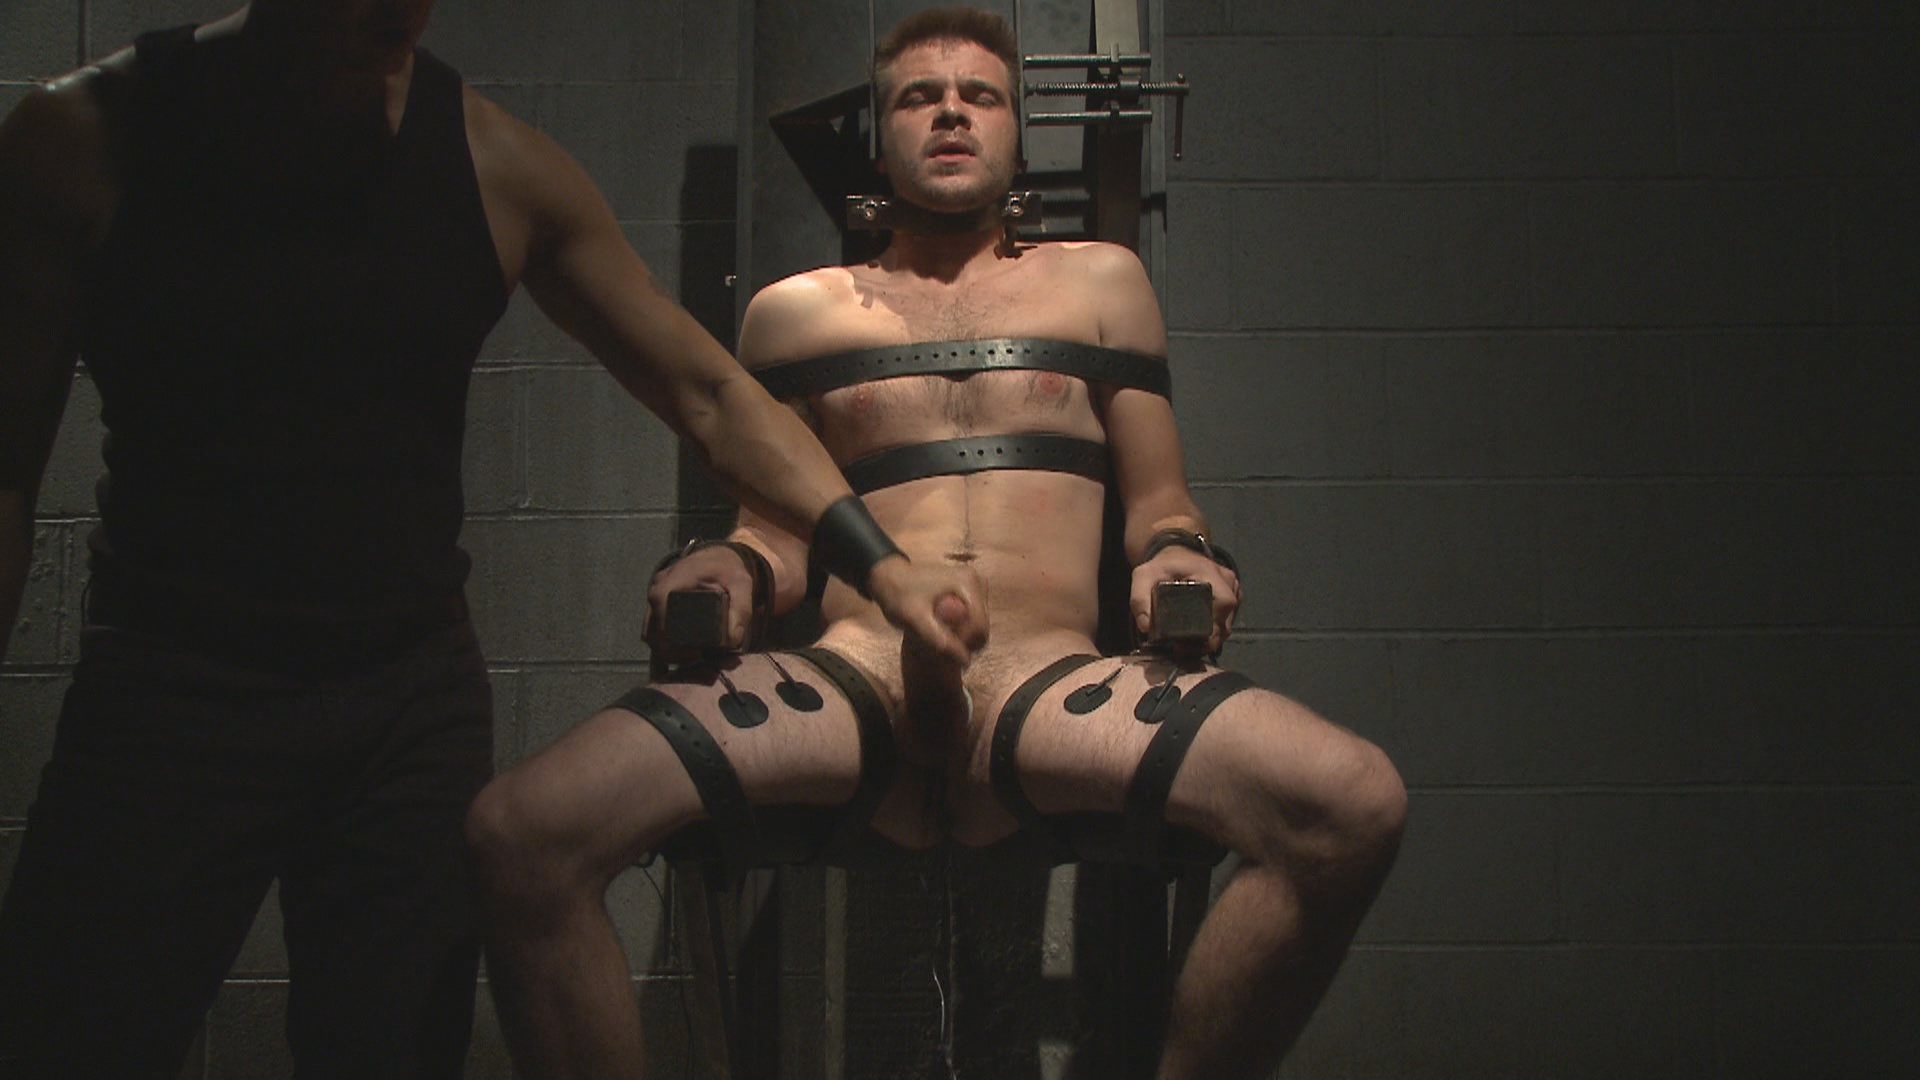 30 Minutes Of Torment: Straight Stud James Riker Tossed Around Like A Rag Doll Xvideo gay